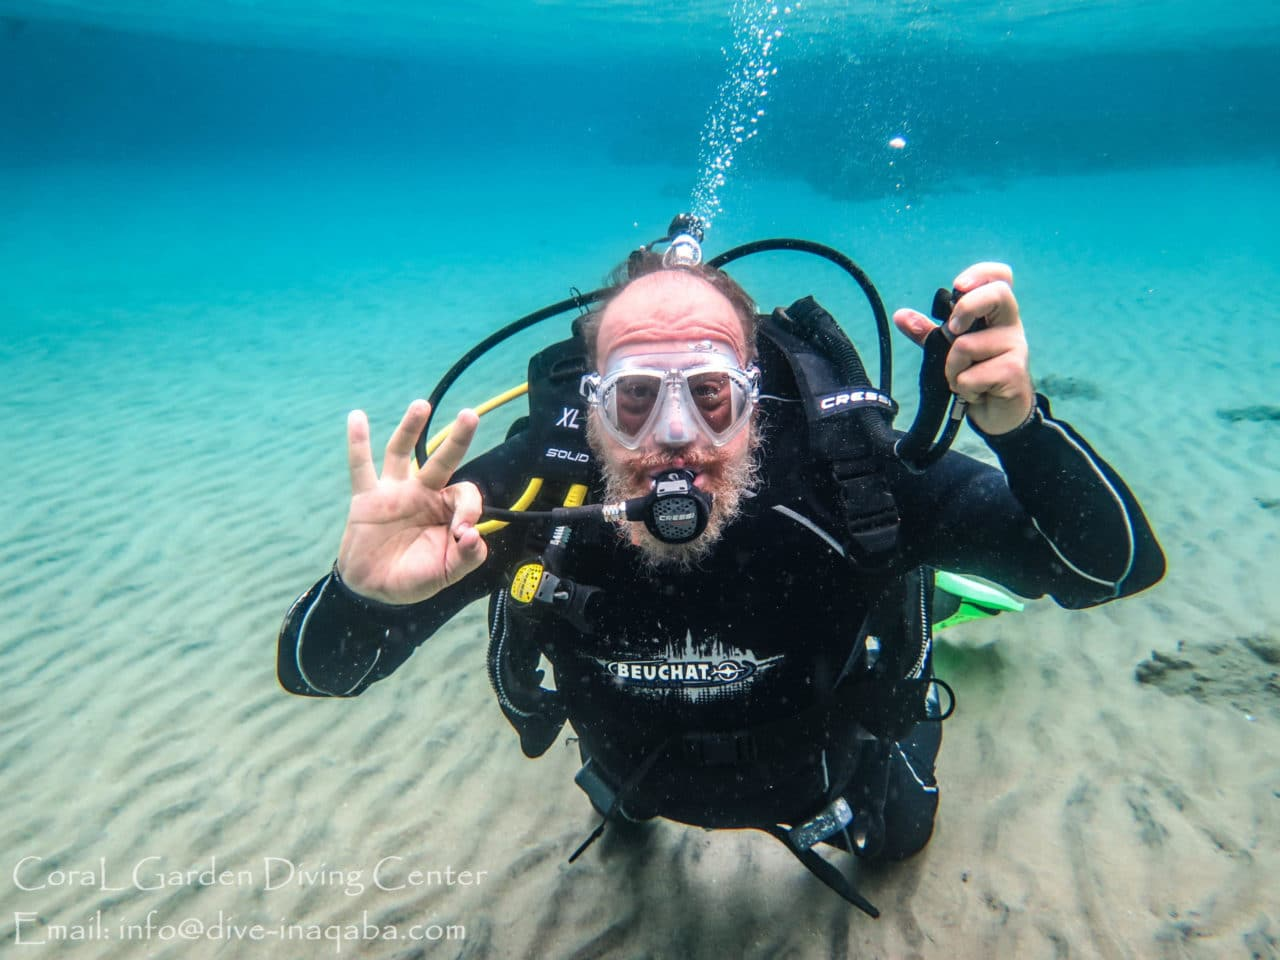 Man dive in shallow water